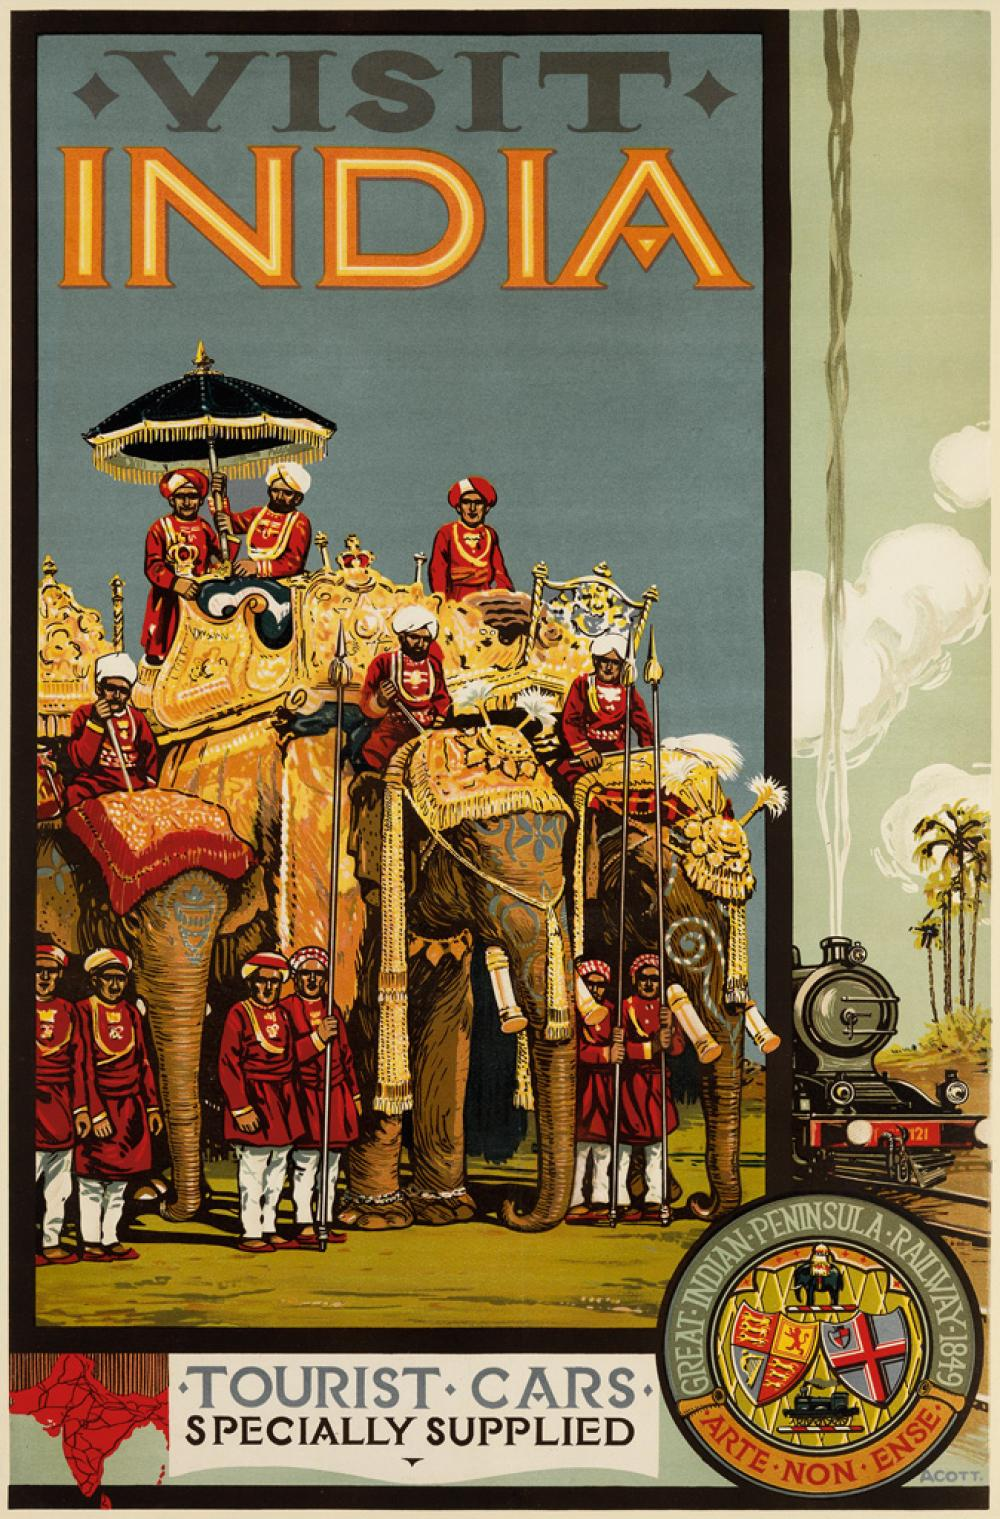 A.R. ACOTT (DATES UNKNOWN). VISIT INDIA. Circa 1920s. 39x25 inches, 101x65 cm.